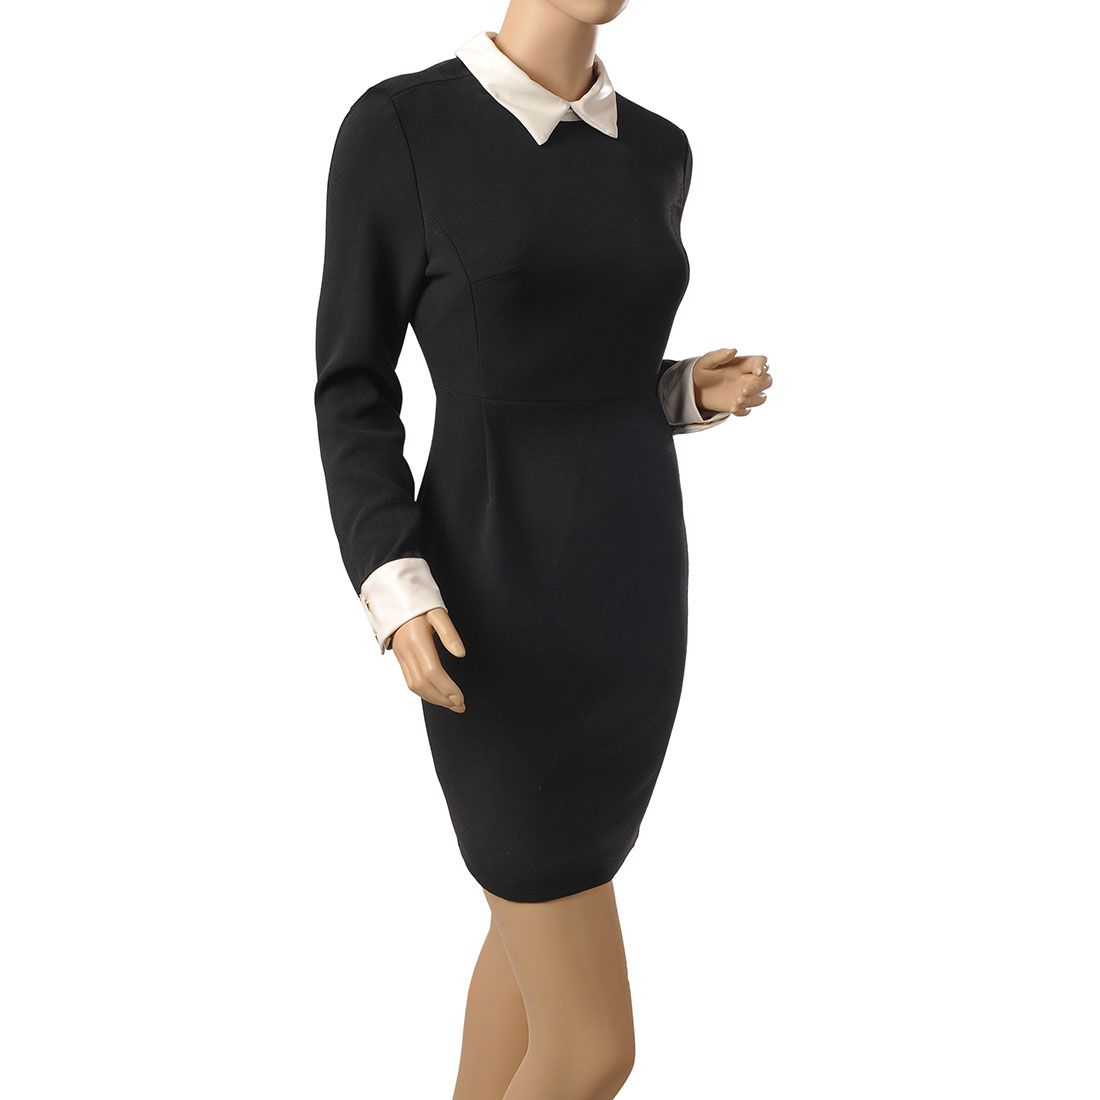 Womens New Fashion Collar Long Sleeve Bodycon Office Dress Slim Fit Features Intro Office Dress White Collar And Fashion Long Sleeve Bodycon Womens Fashion [ 1100 x 1100 Pixel ]